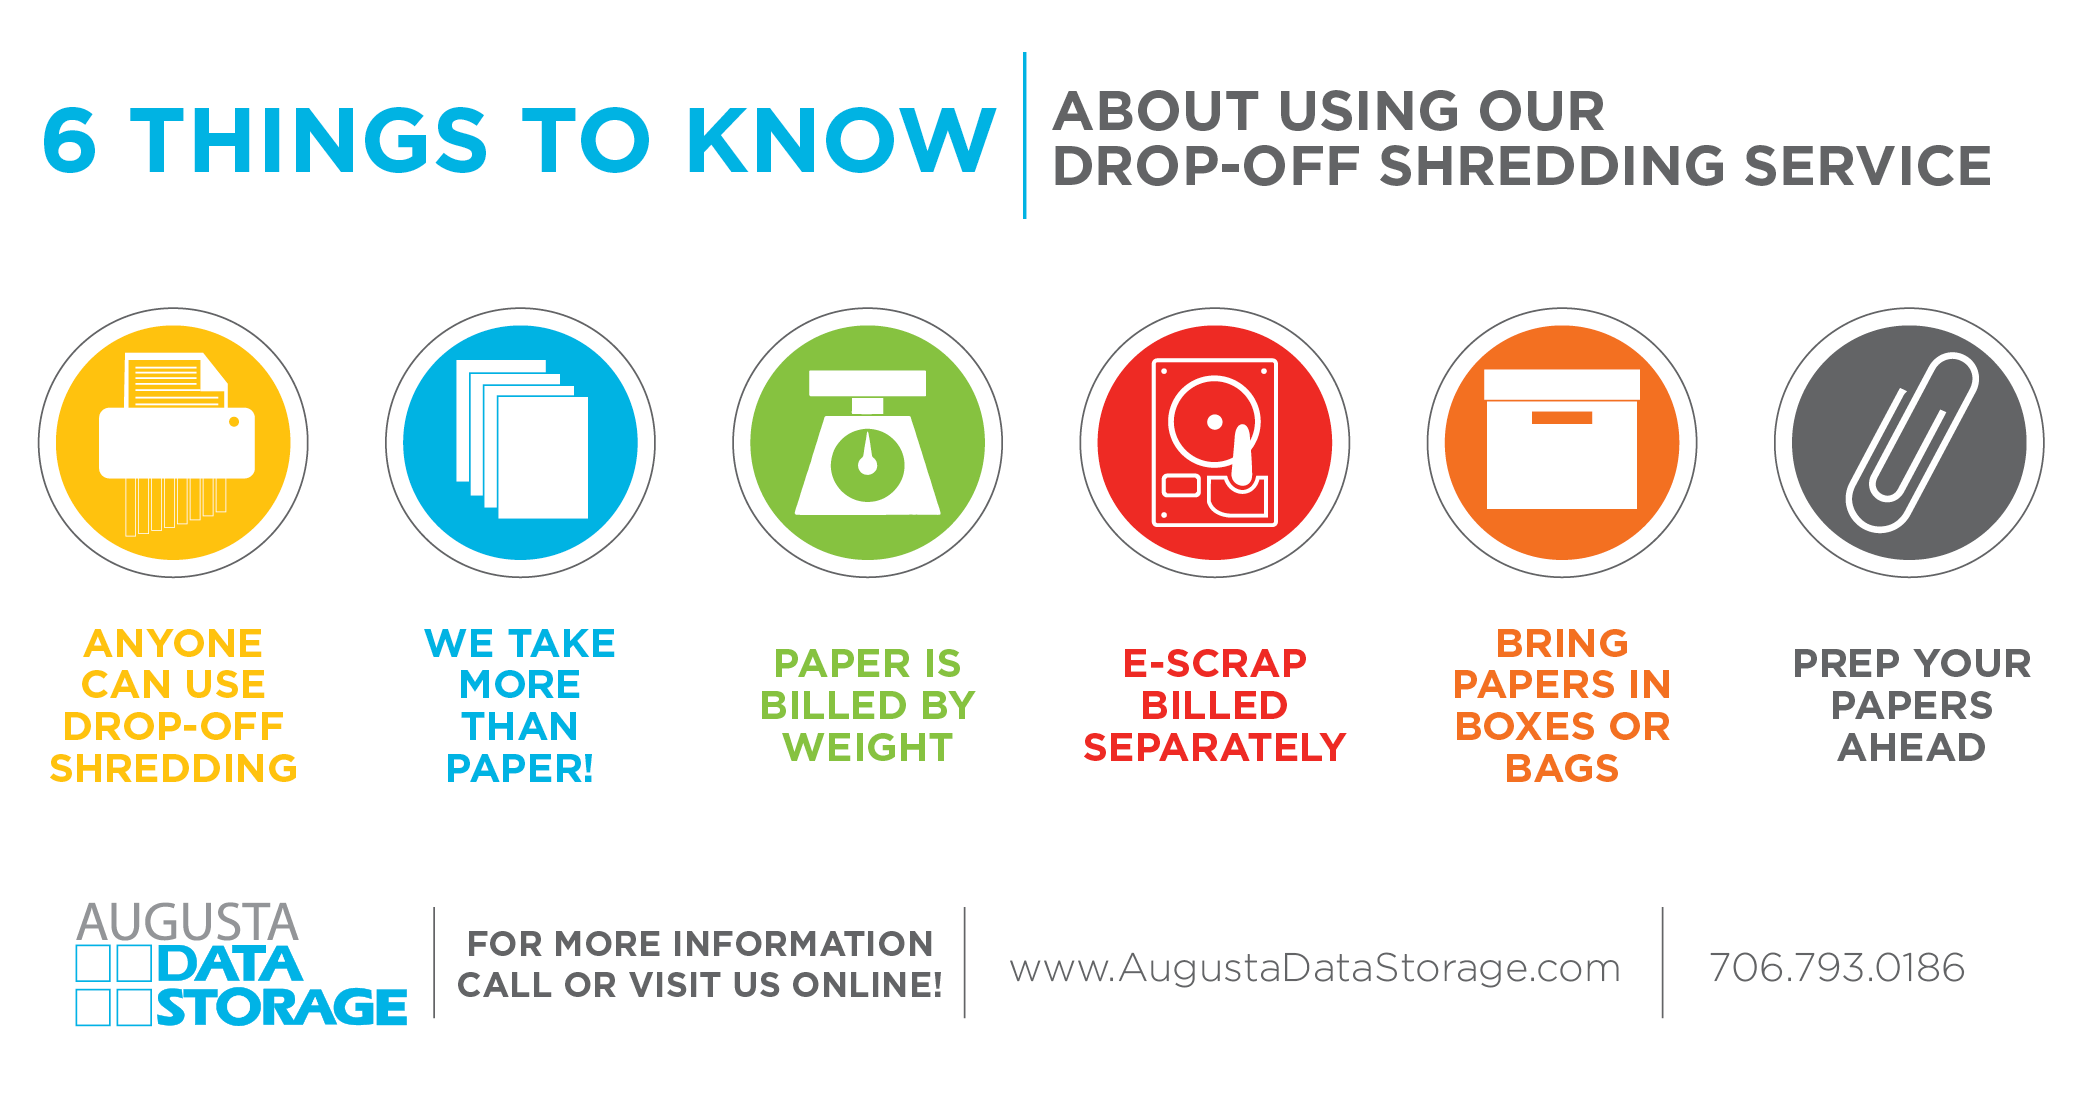 6 Things to Know about our Drop-off Shredding Services